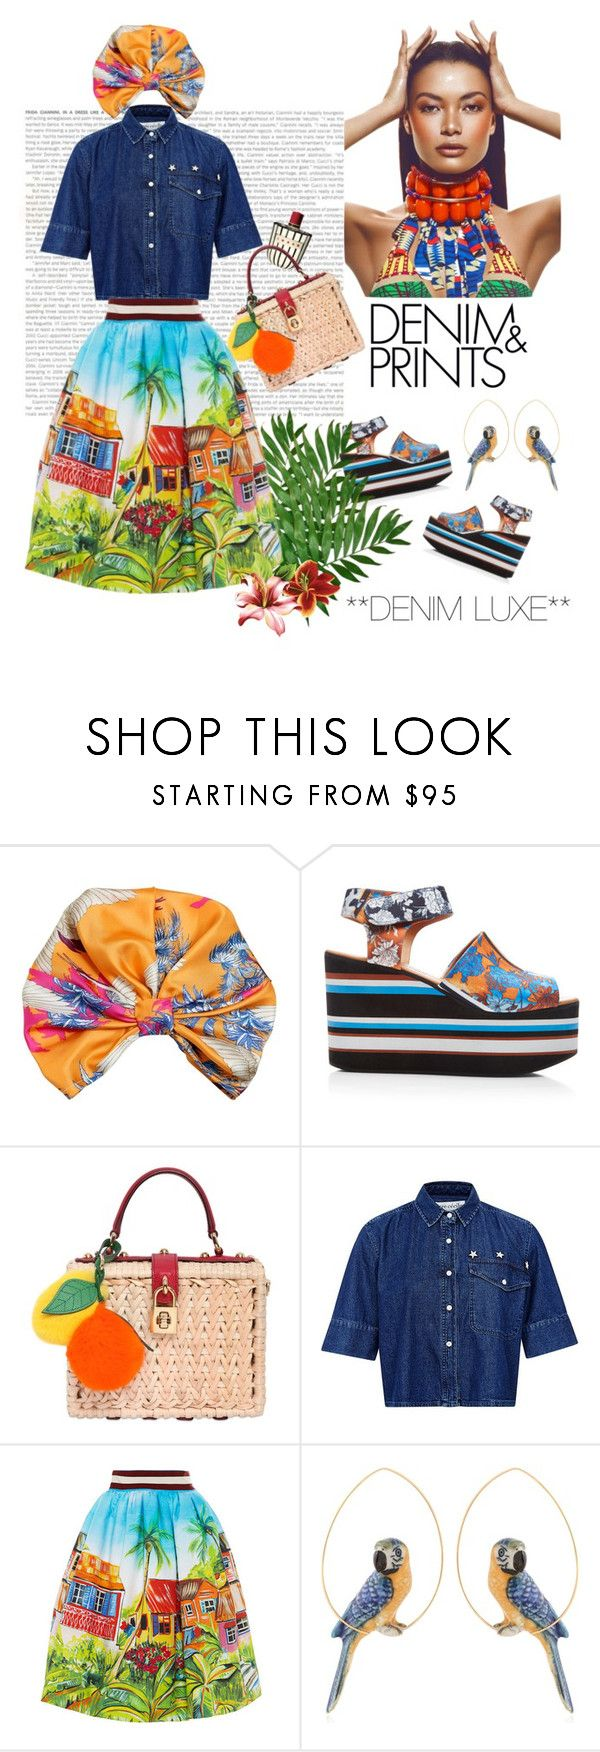 """""""**Denim Luxe**"""" by naturalbornstyler ❤ liked on Polyvore featuring Etro, Clover Canyon, Dolce&Gabbana, Être Cécile, Stella Jean and Nach"""